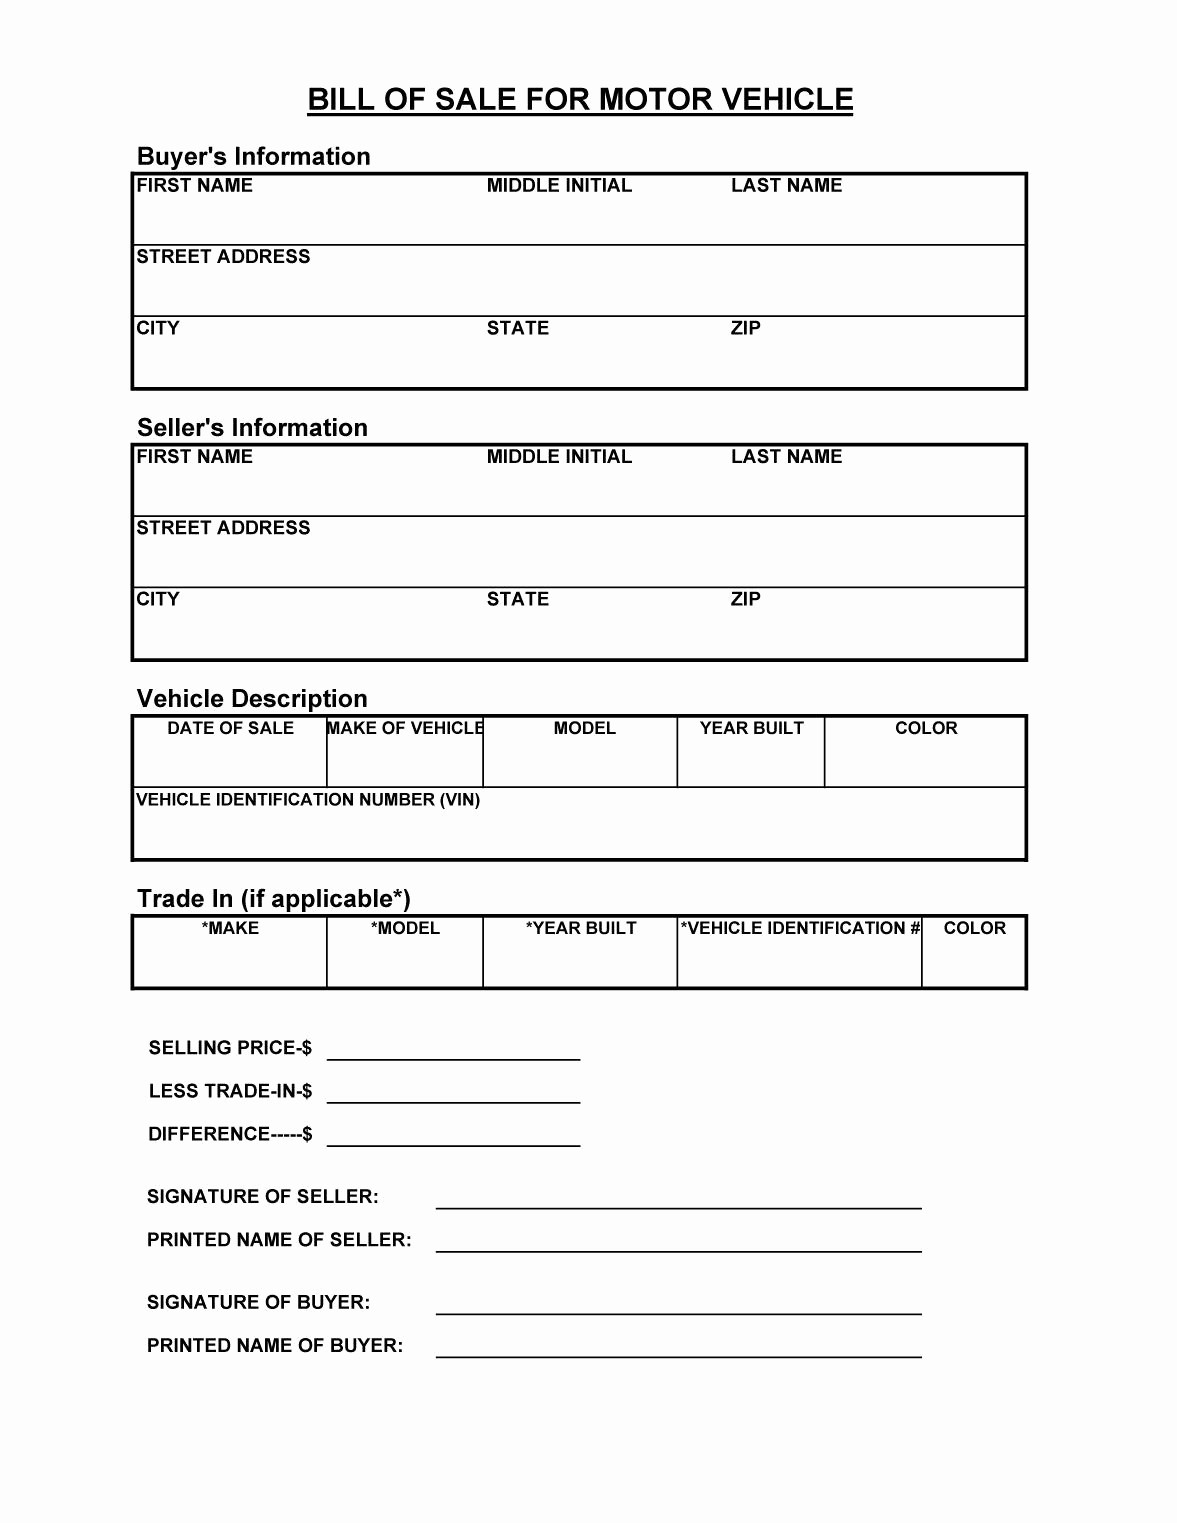 Free Template Bill Of Sale Best Of 45 Fee Printable Bill Of Sale Templates Car Boat Gun